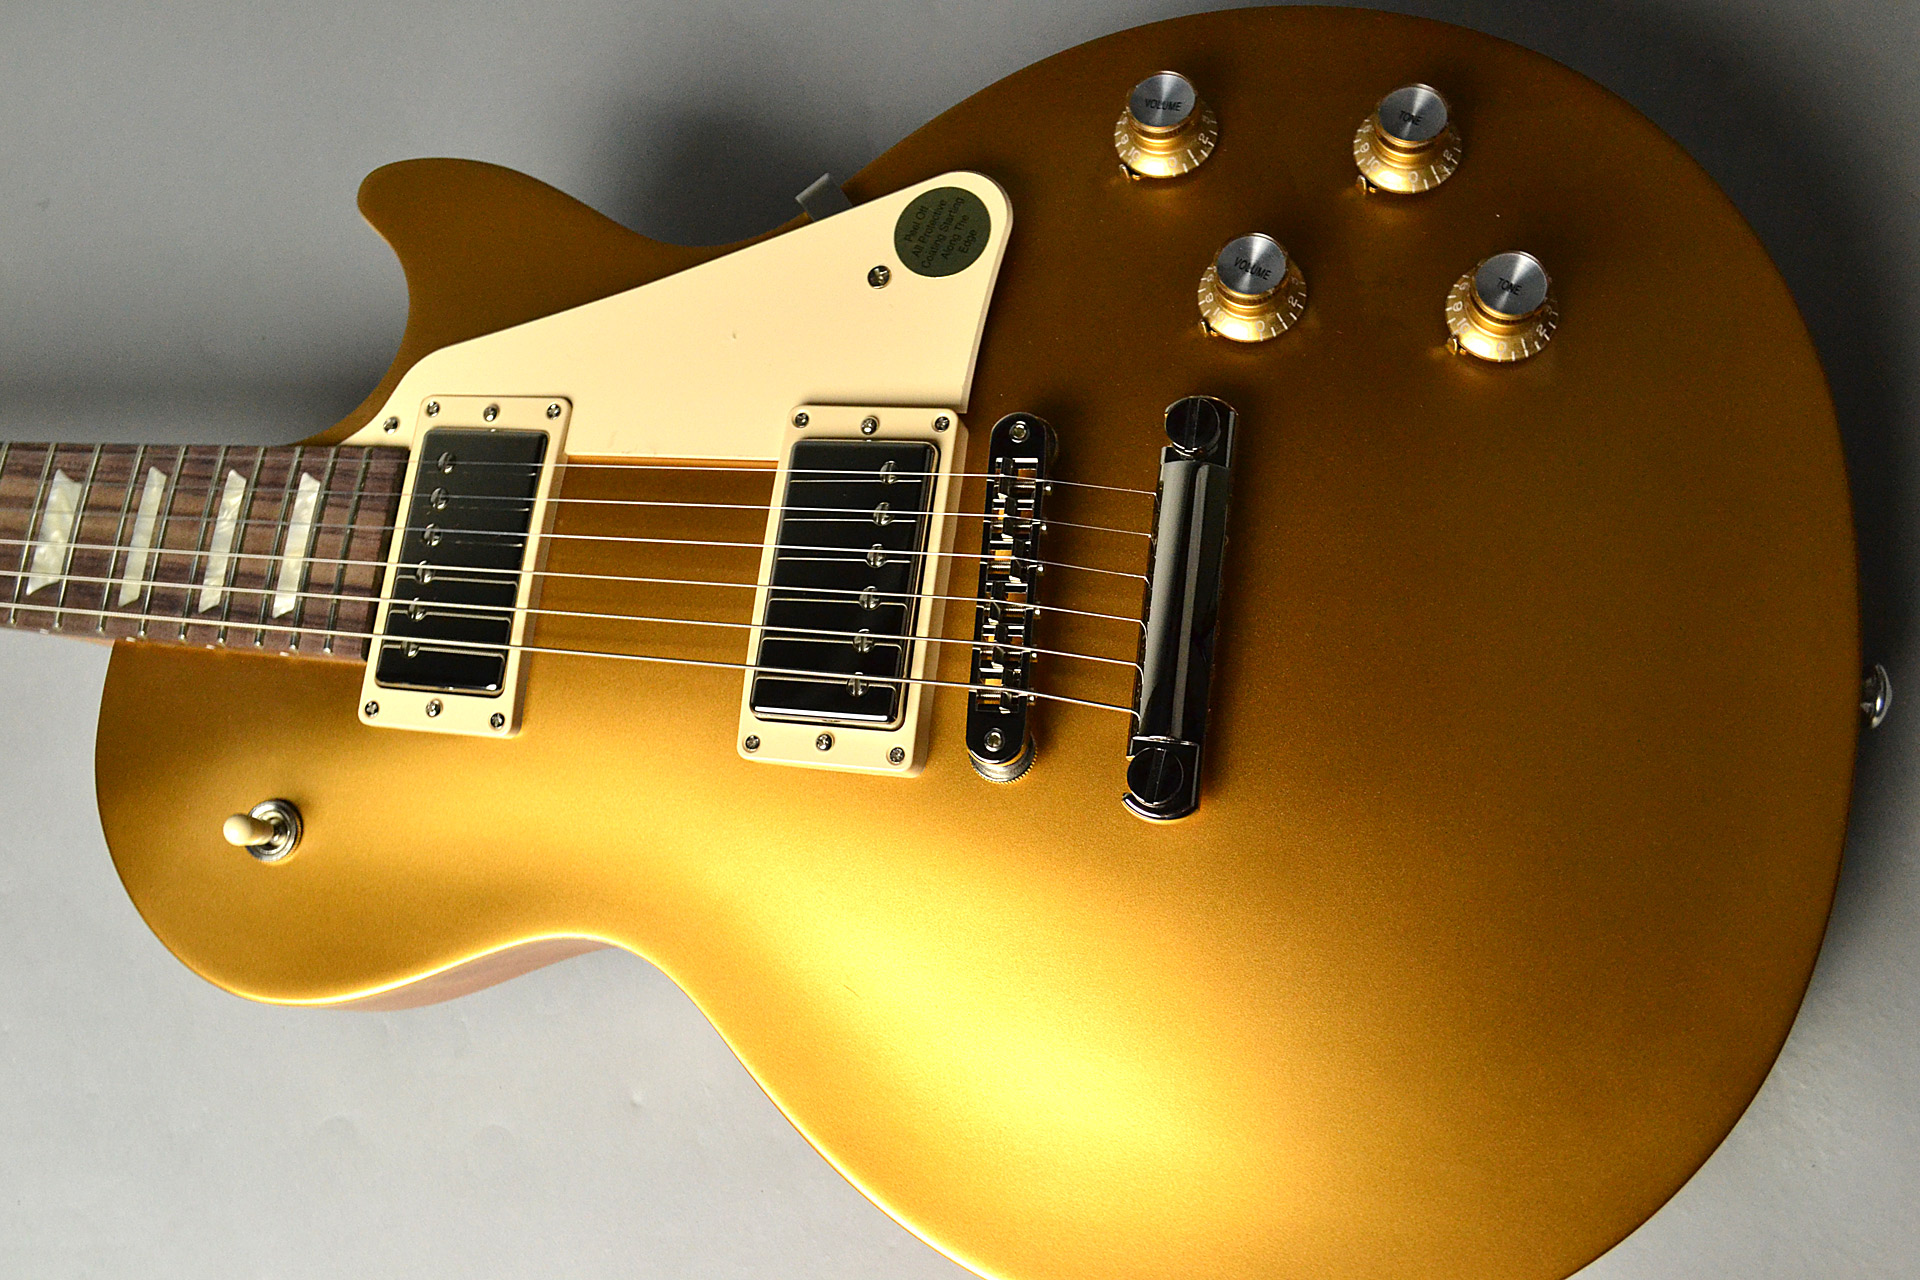 Les Paul Tribute 2018 Satin Gold Topの全体画像(縦)